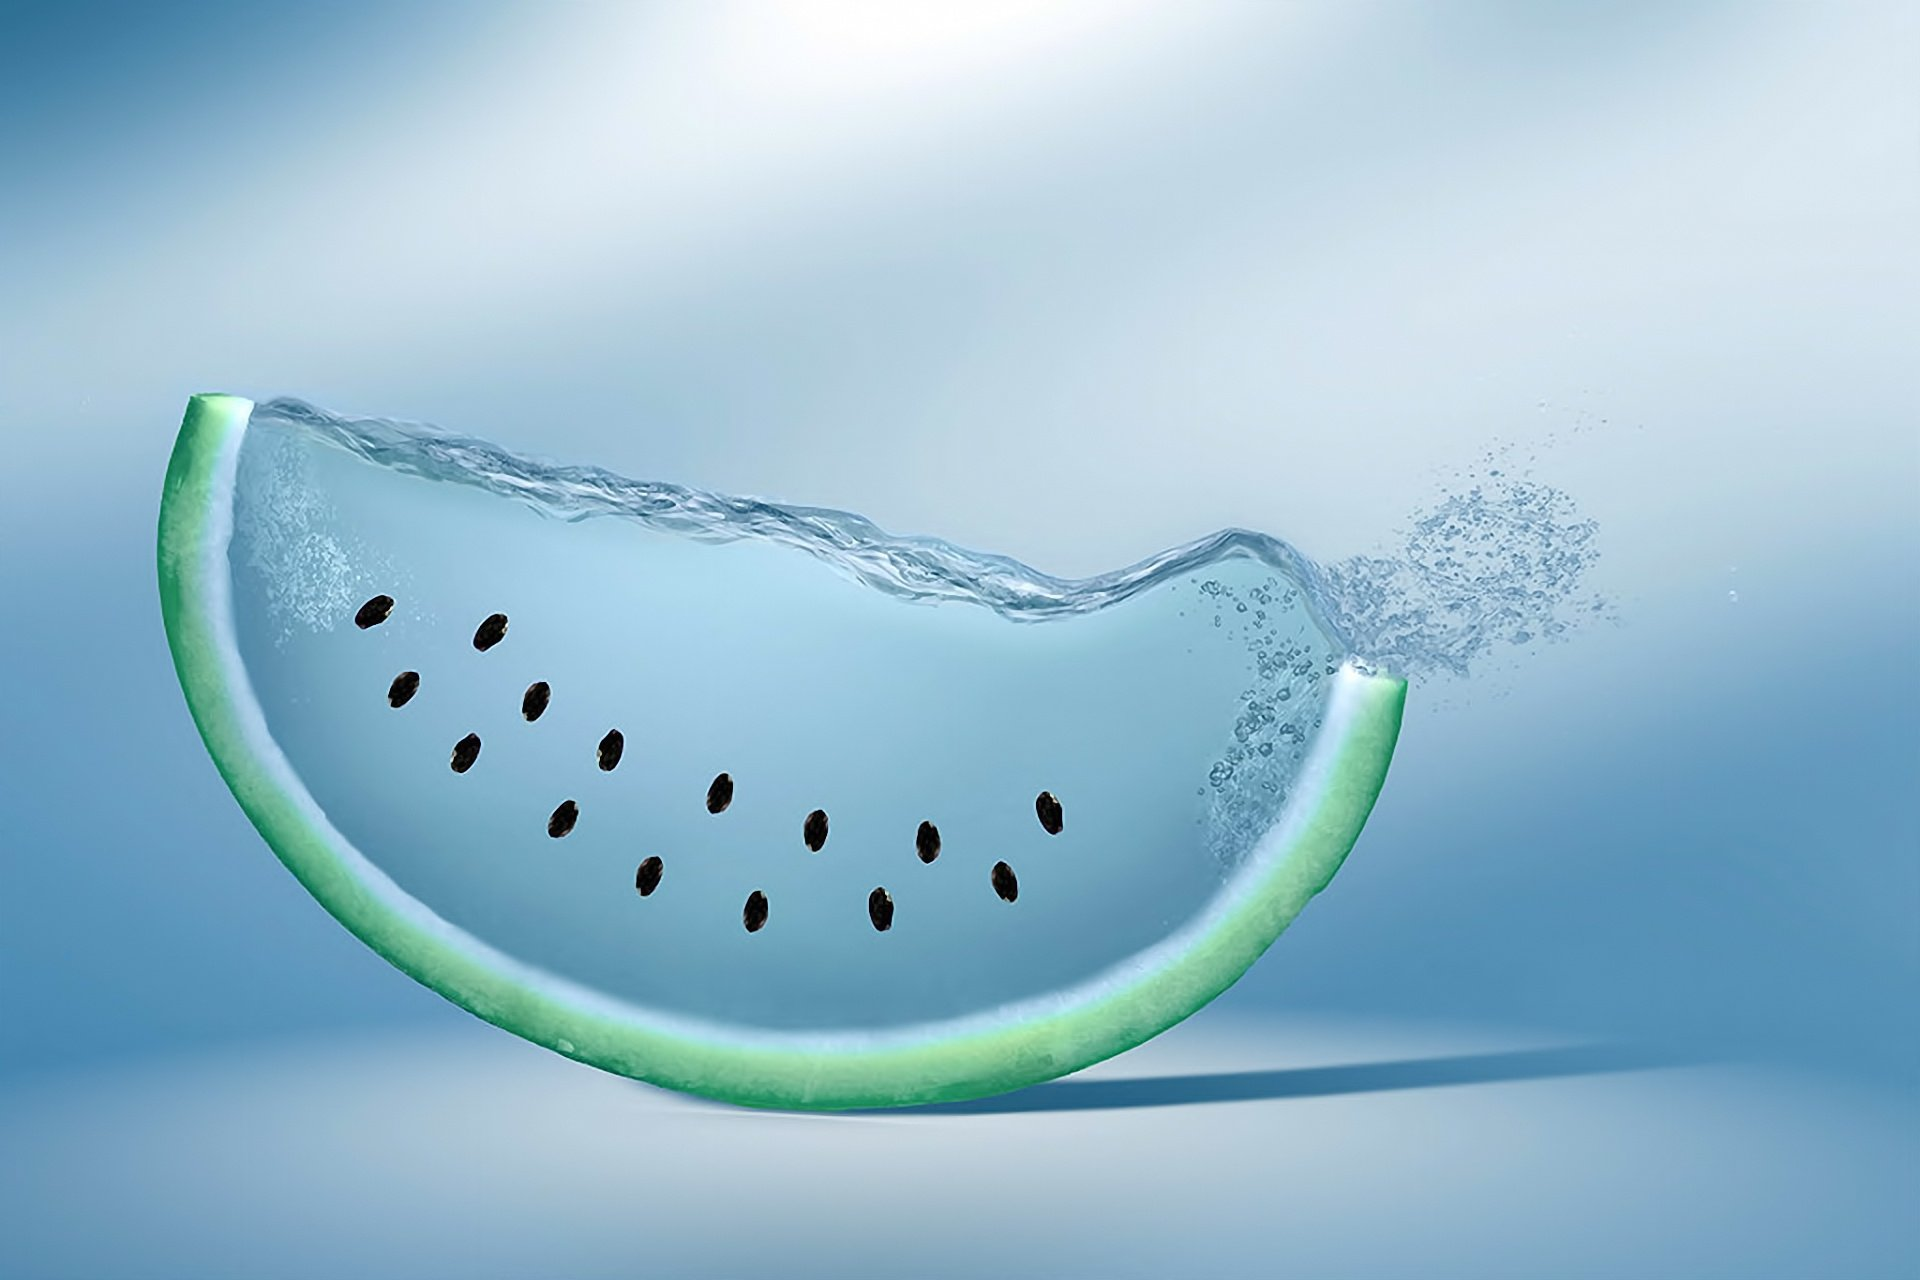 watermelon water blue background drop